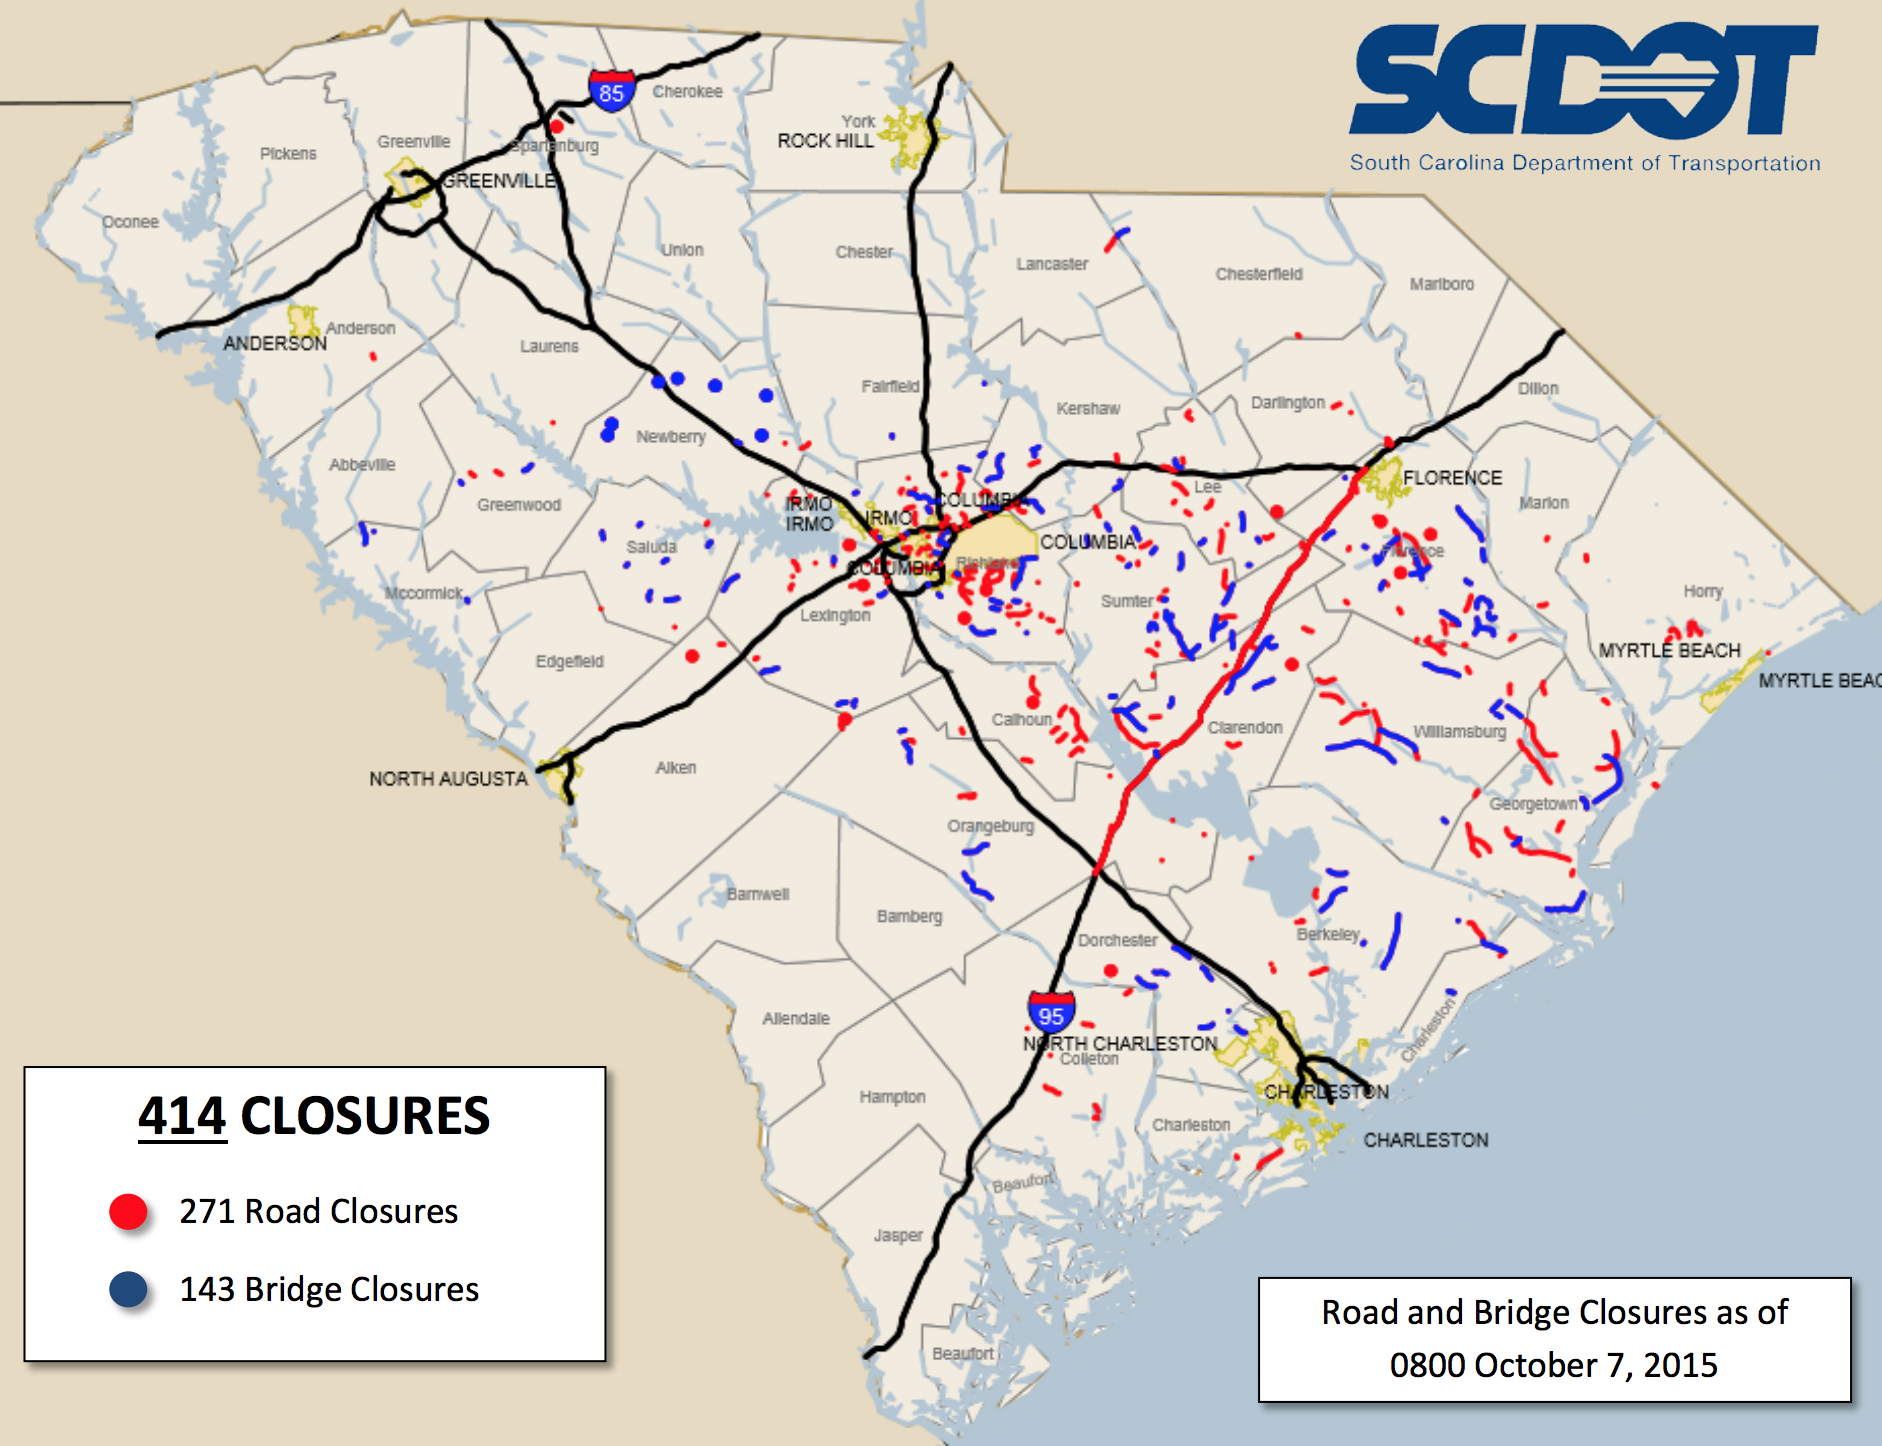 UPDATED: 271 roads, 143 bridges closed in South Carolina after downpour, flooding